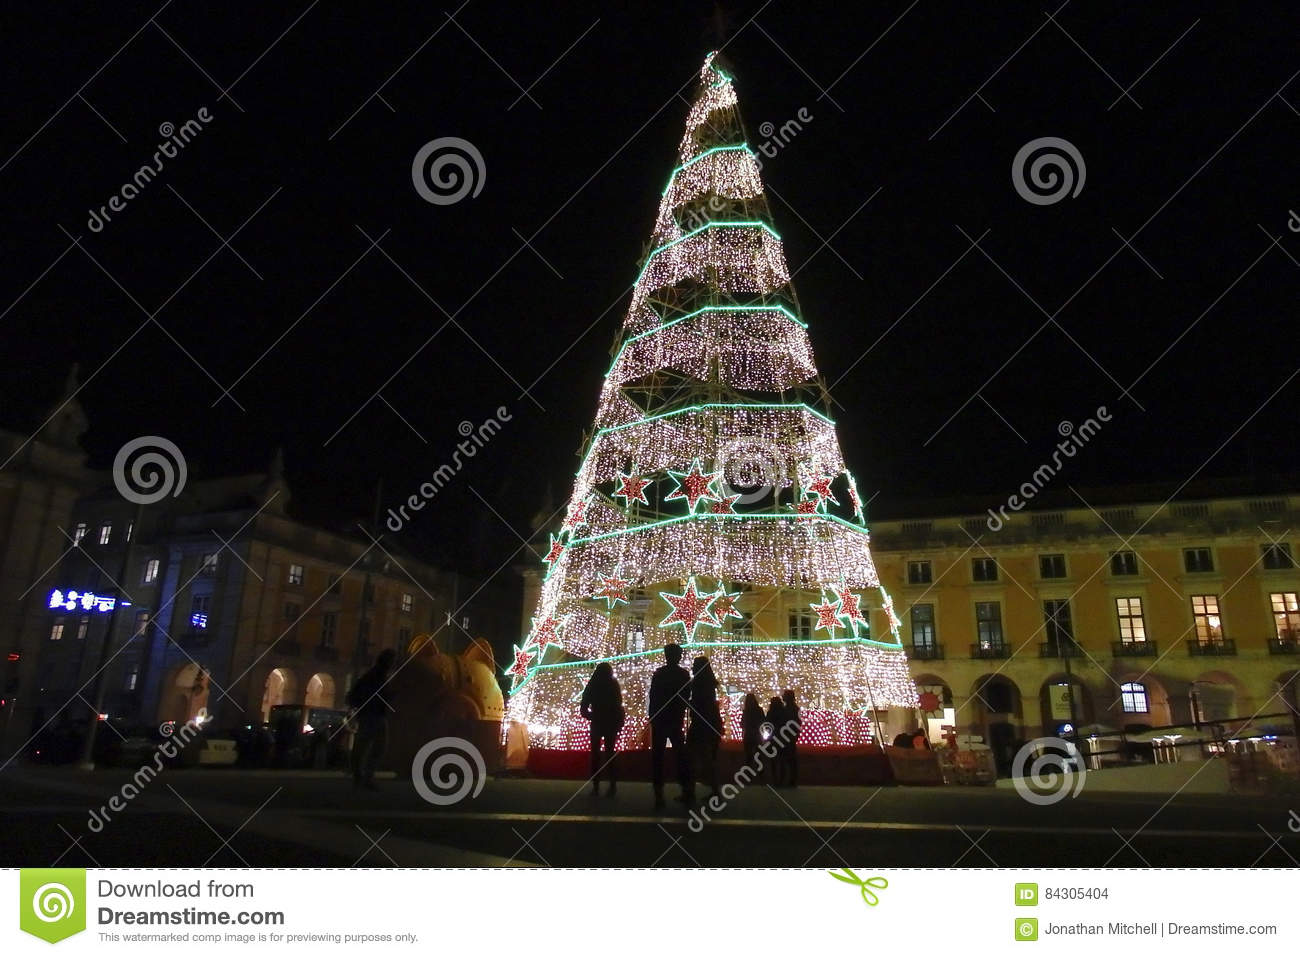 portugal lisbon 16 dec 2014 christmas decoration lights in the praca do commercio in baixa lisbon portugal picture by jonathan mitchellatlas photo - Christmas In Portugal